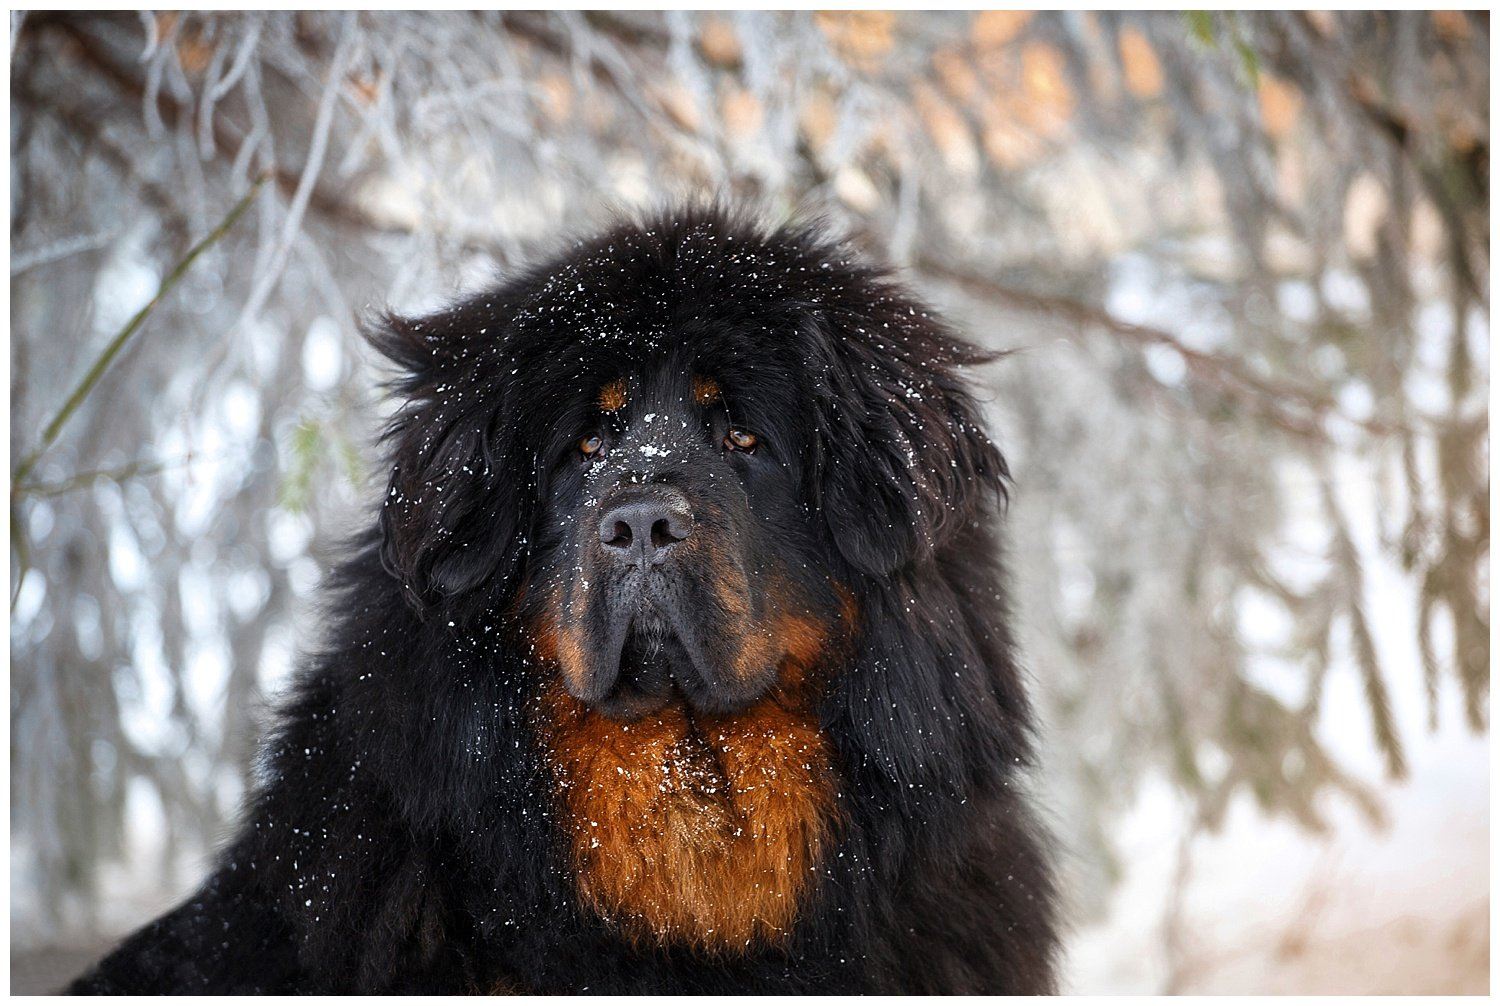 Asiatic Black Bear Mistaken for Pet Tibetan Mastiff Dog